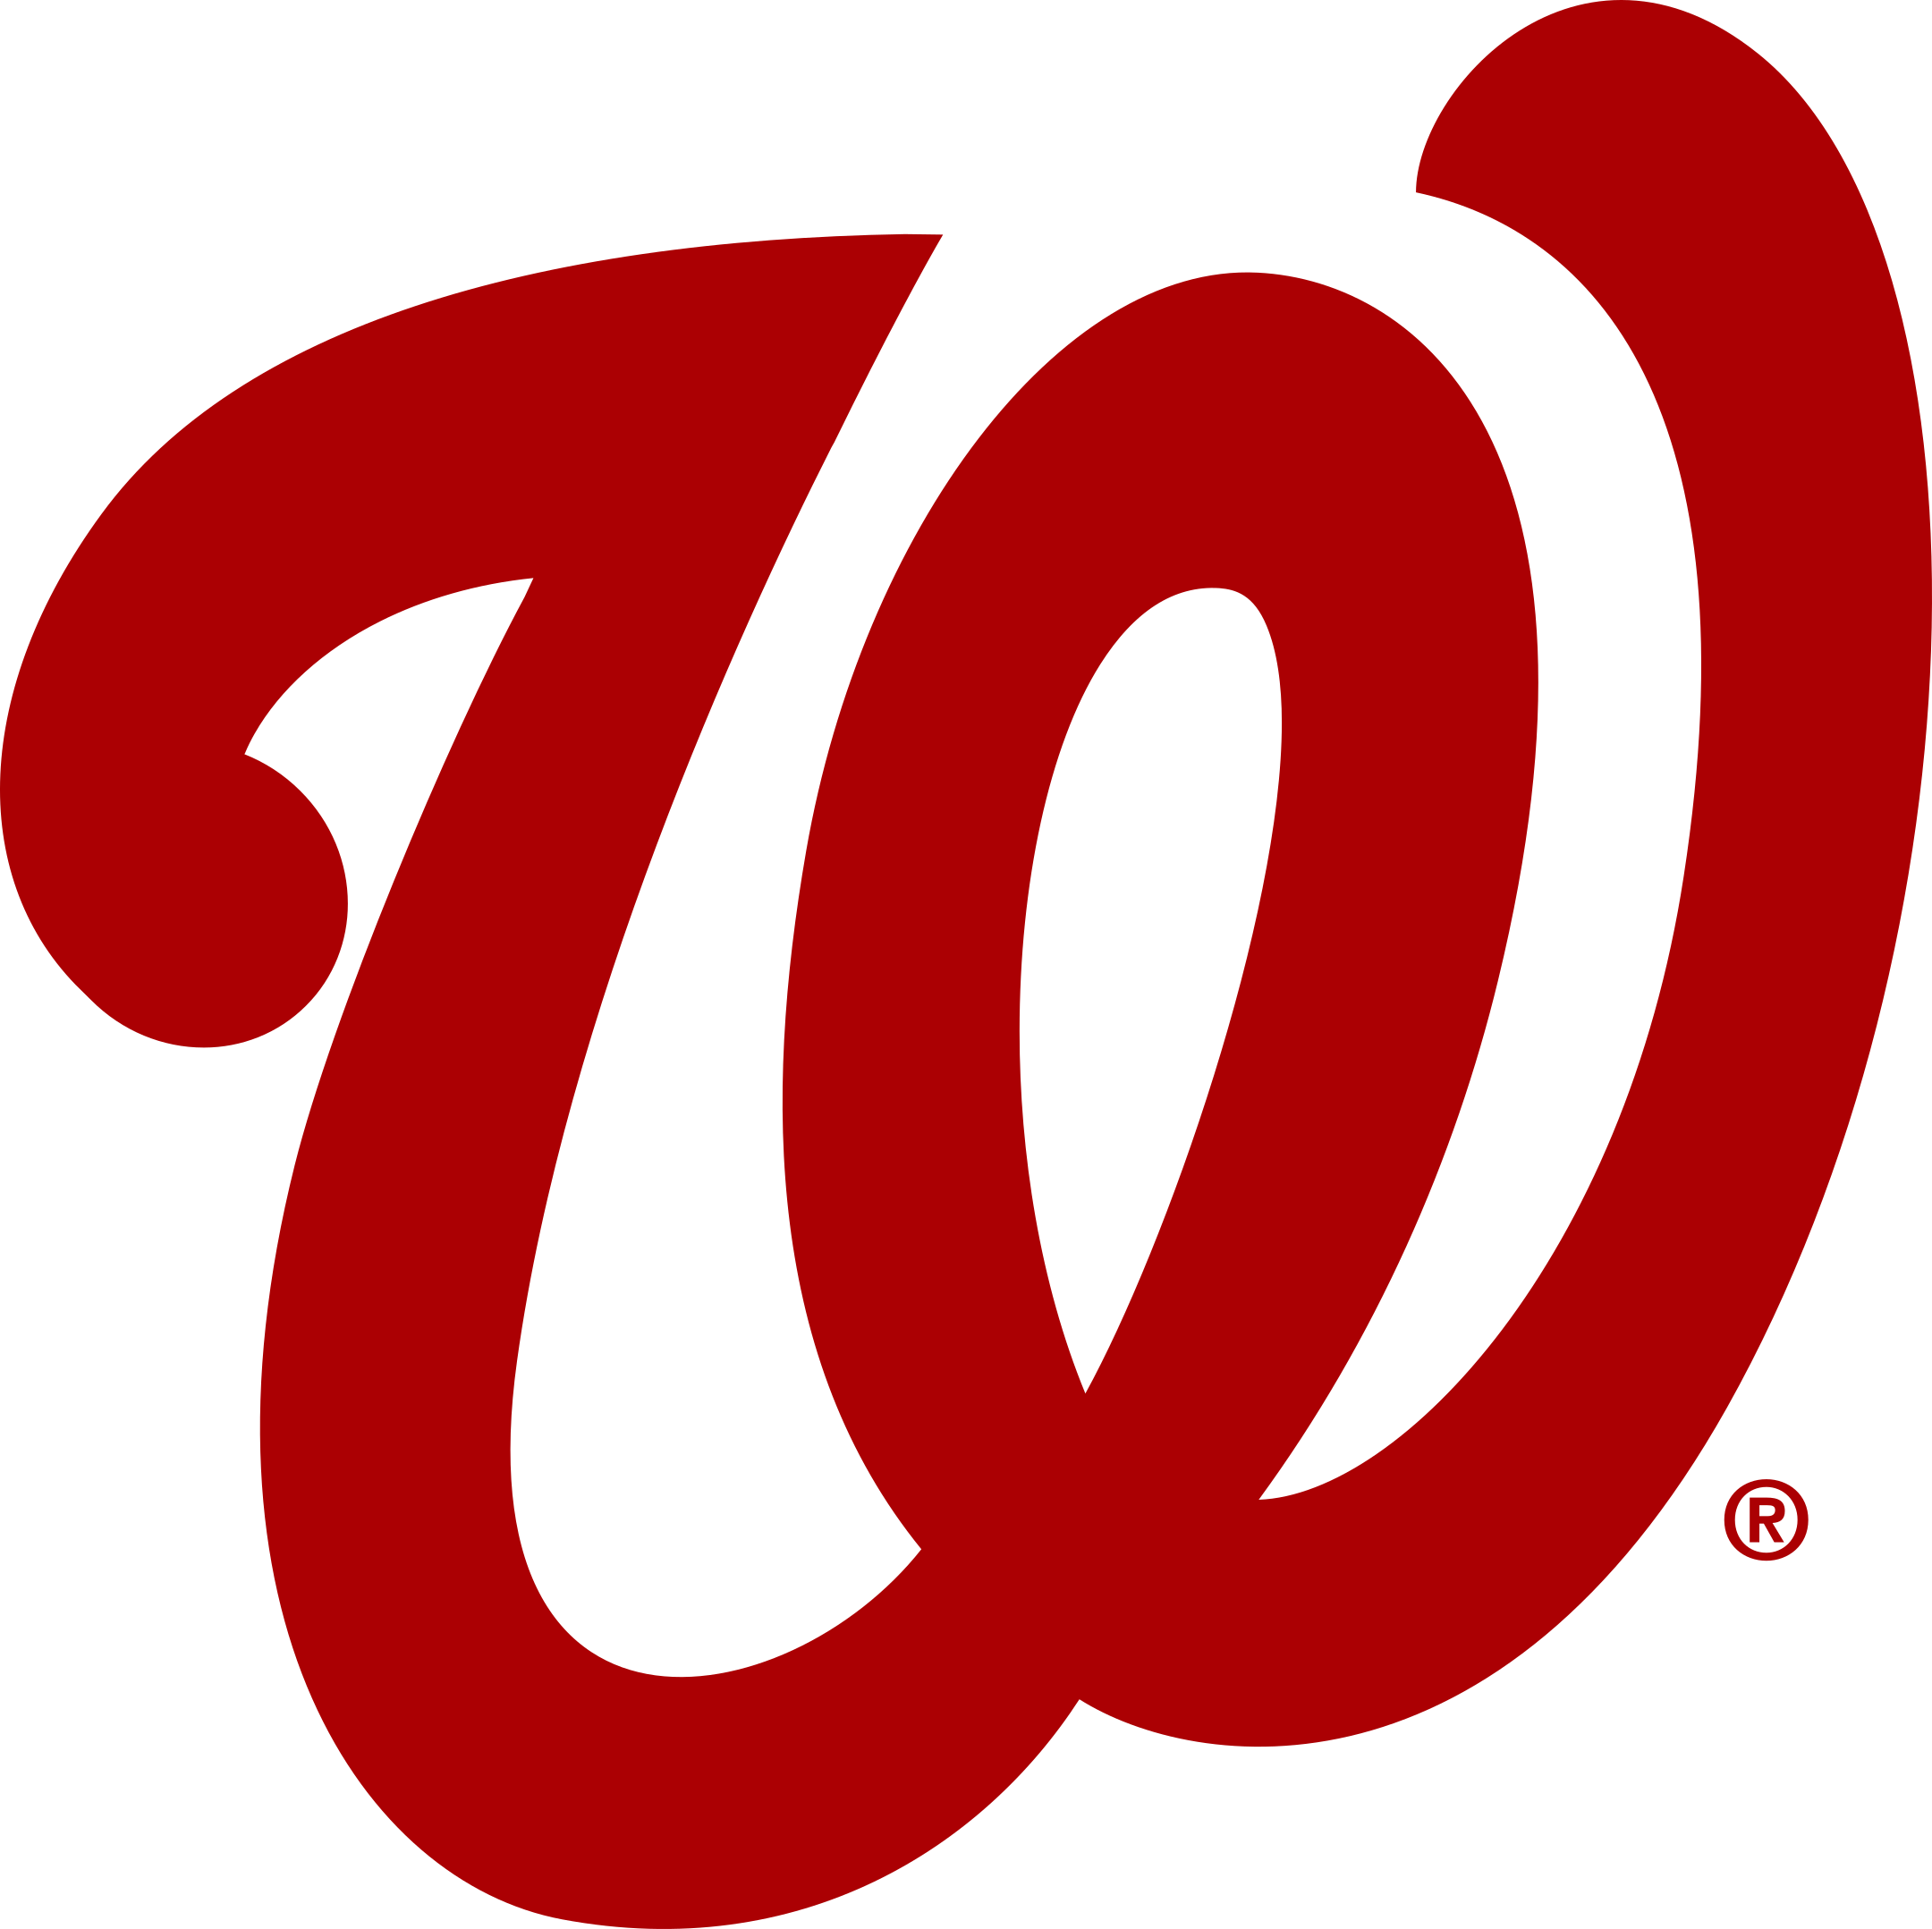 washington nationals logo 1 - Washington Nationals Logo